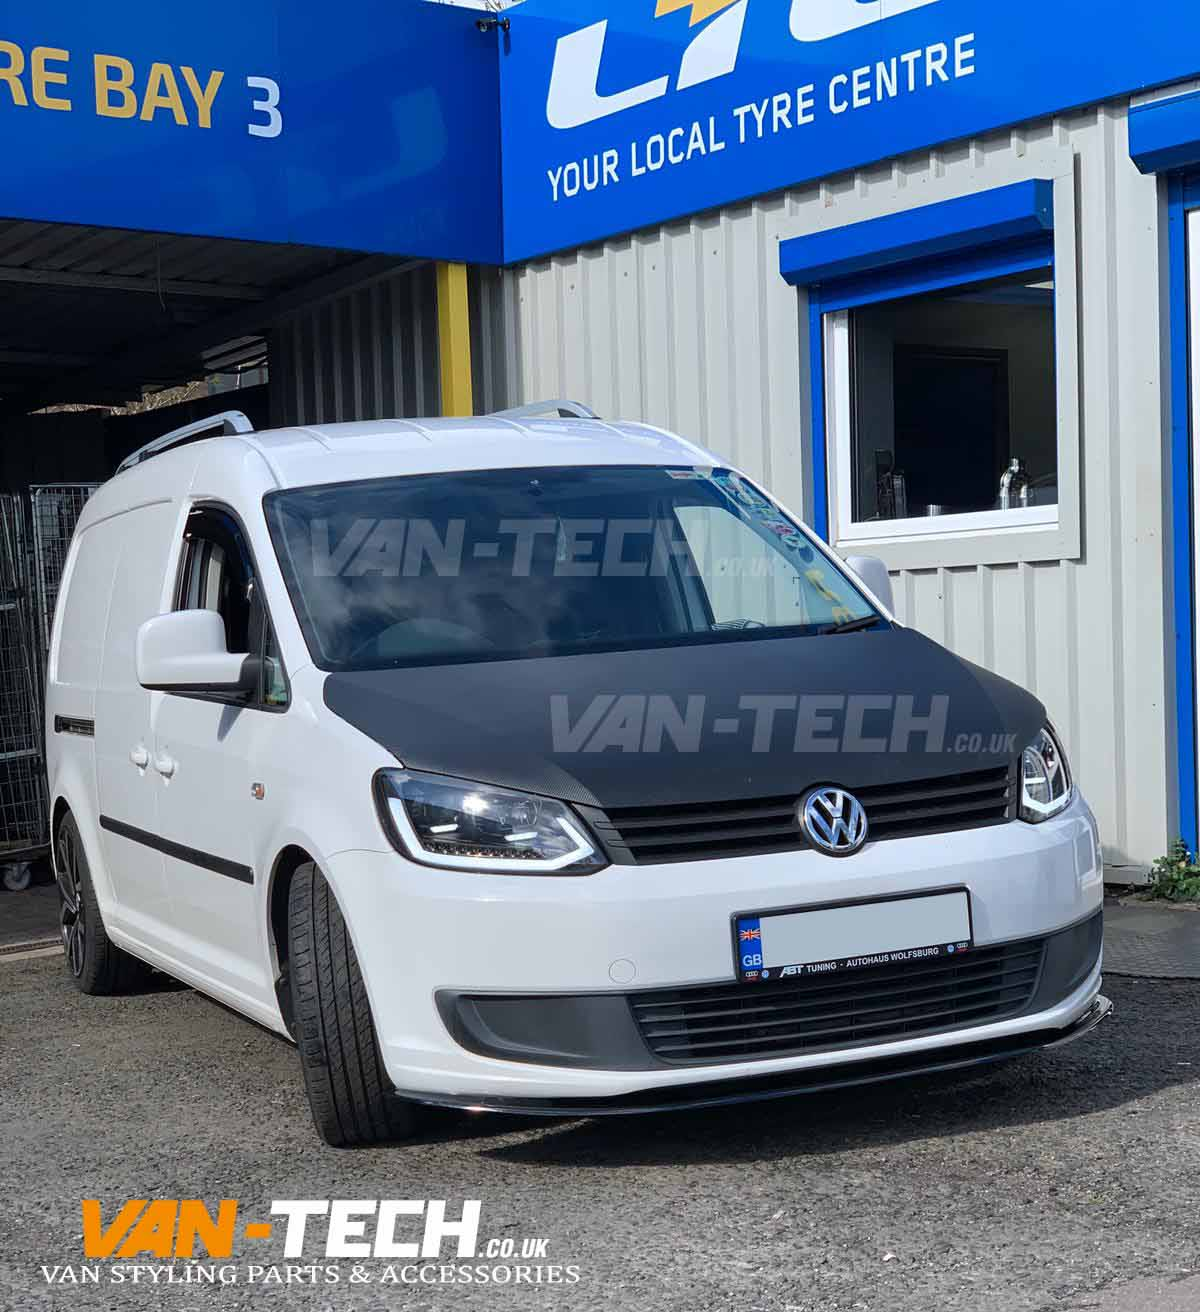 VW Caddy fitted with Lightbar Headlights and Lower Front Splitter